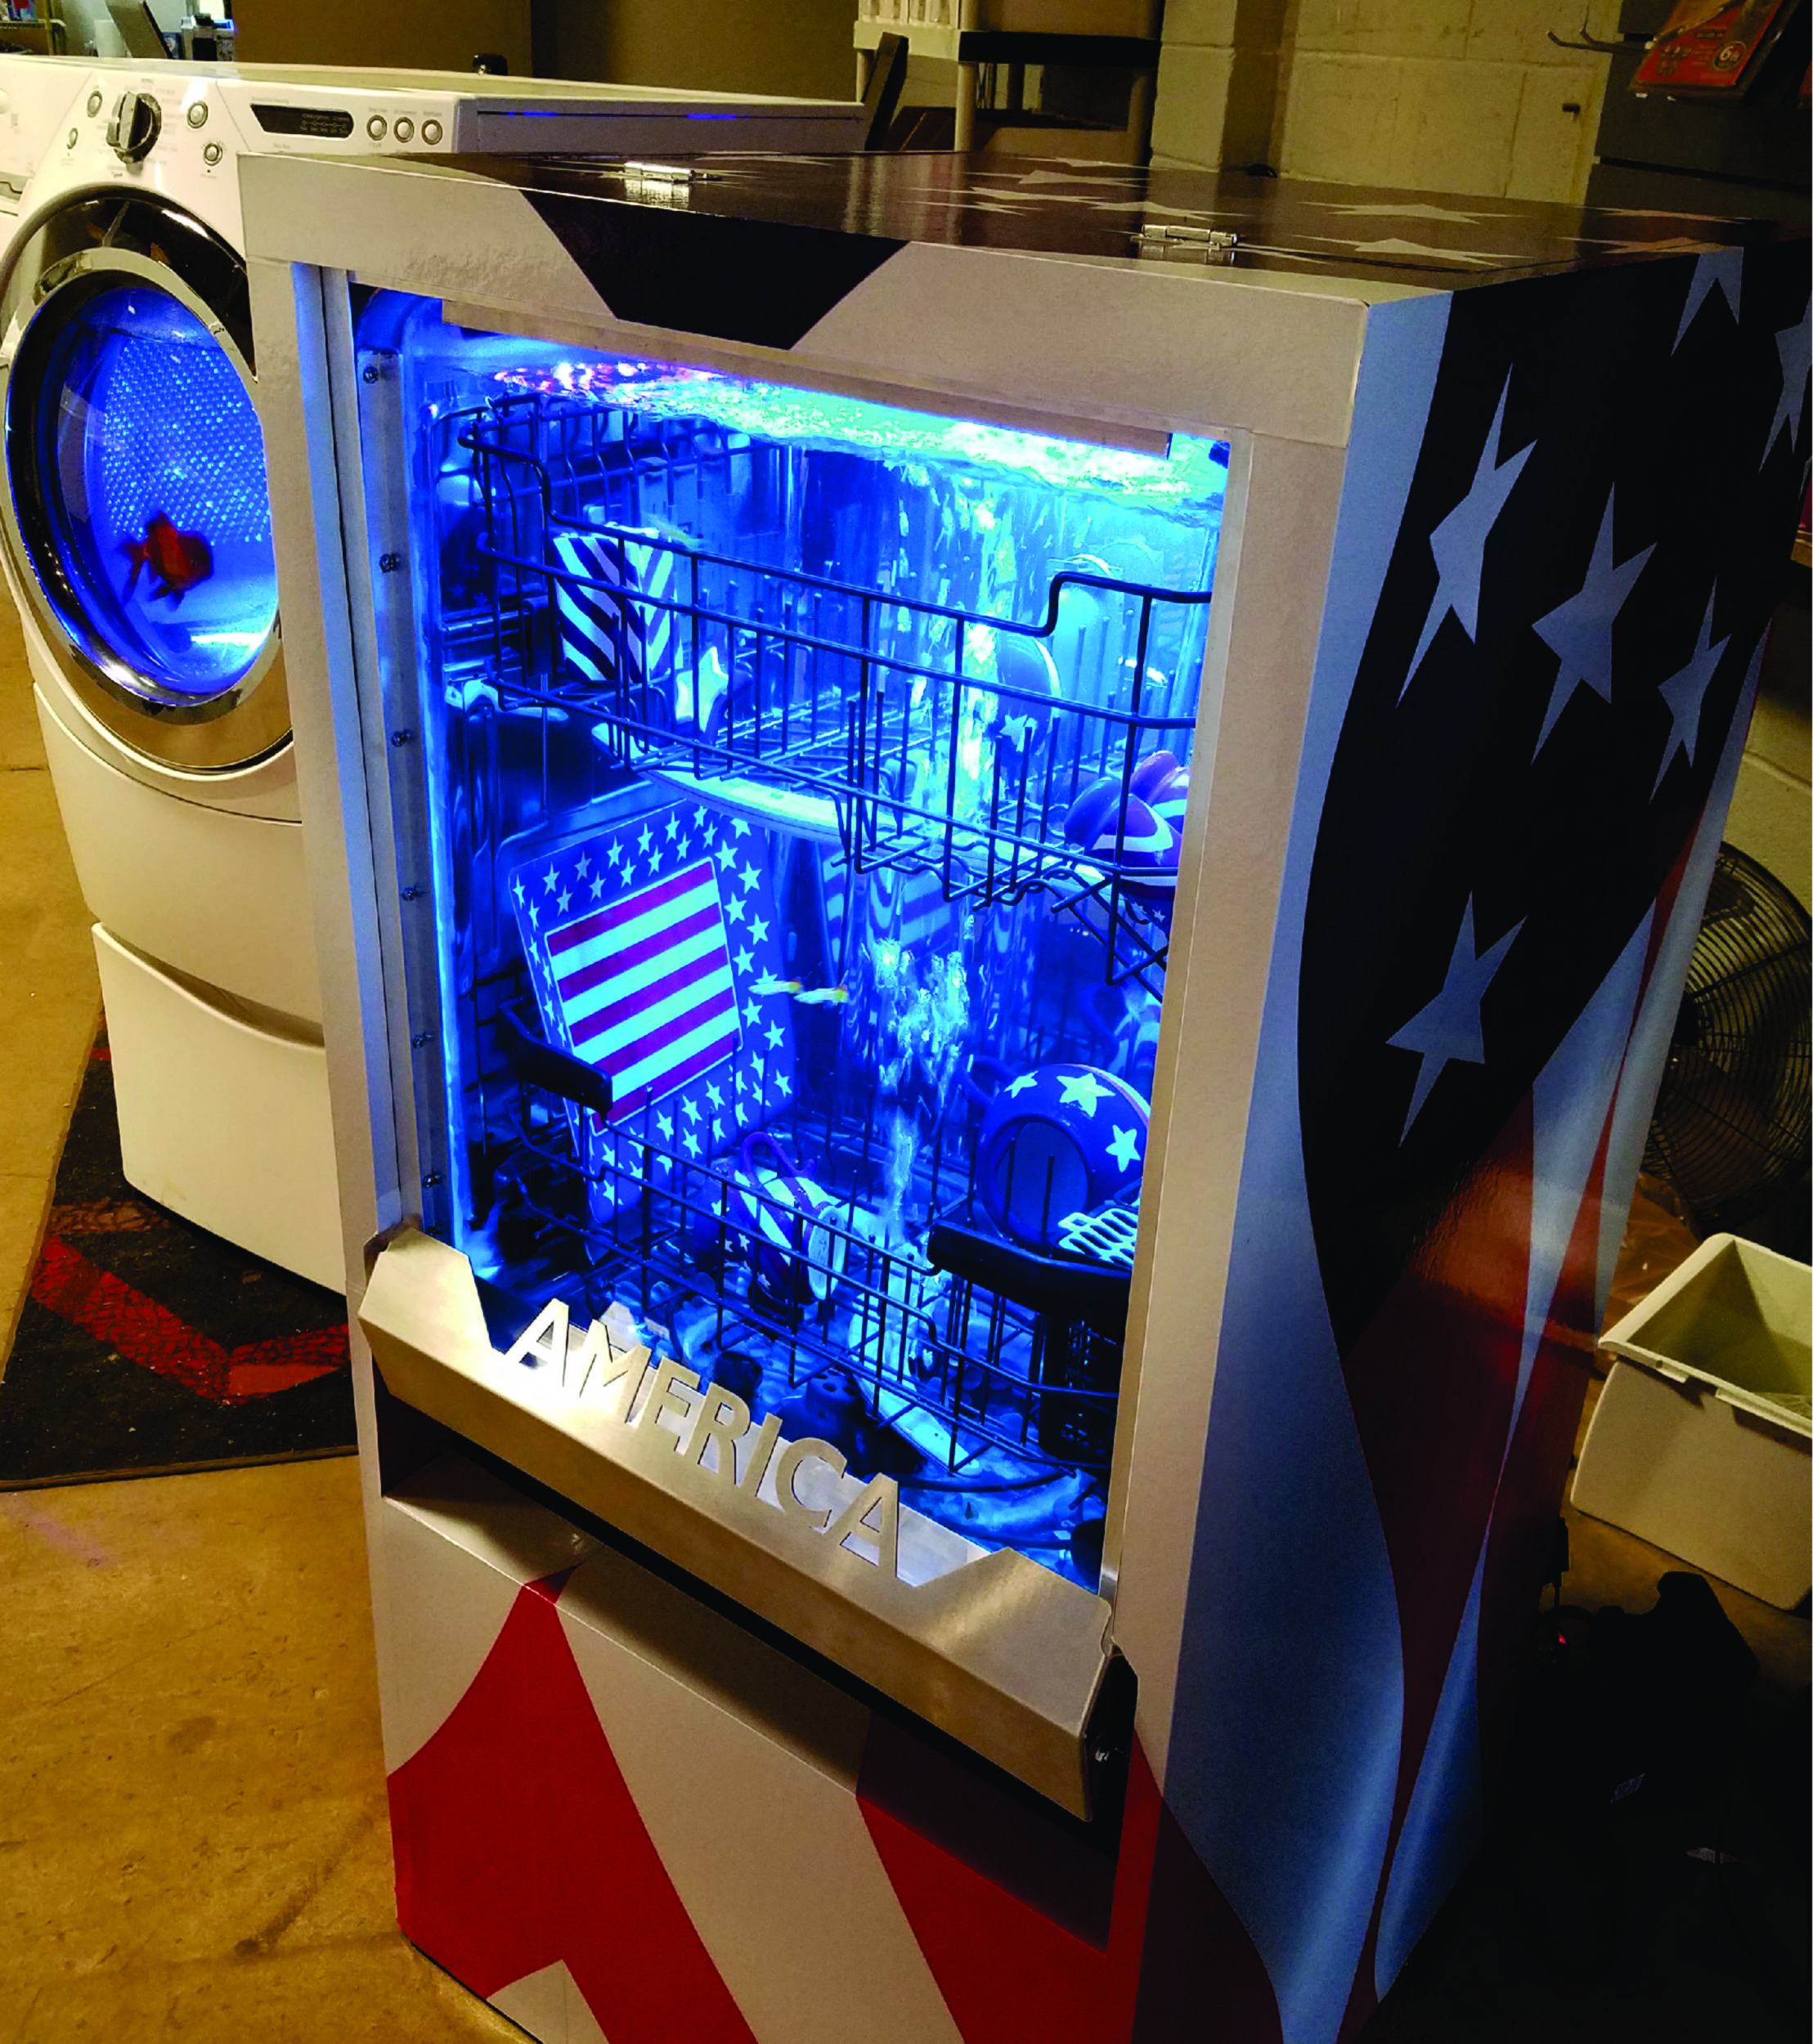 Convert a Dishwasher into a Fish Tank? Why Not?